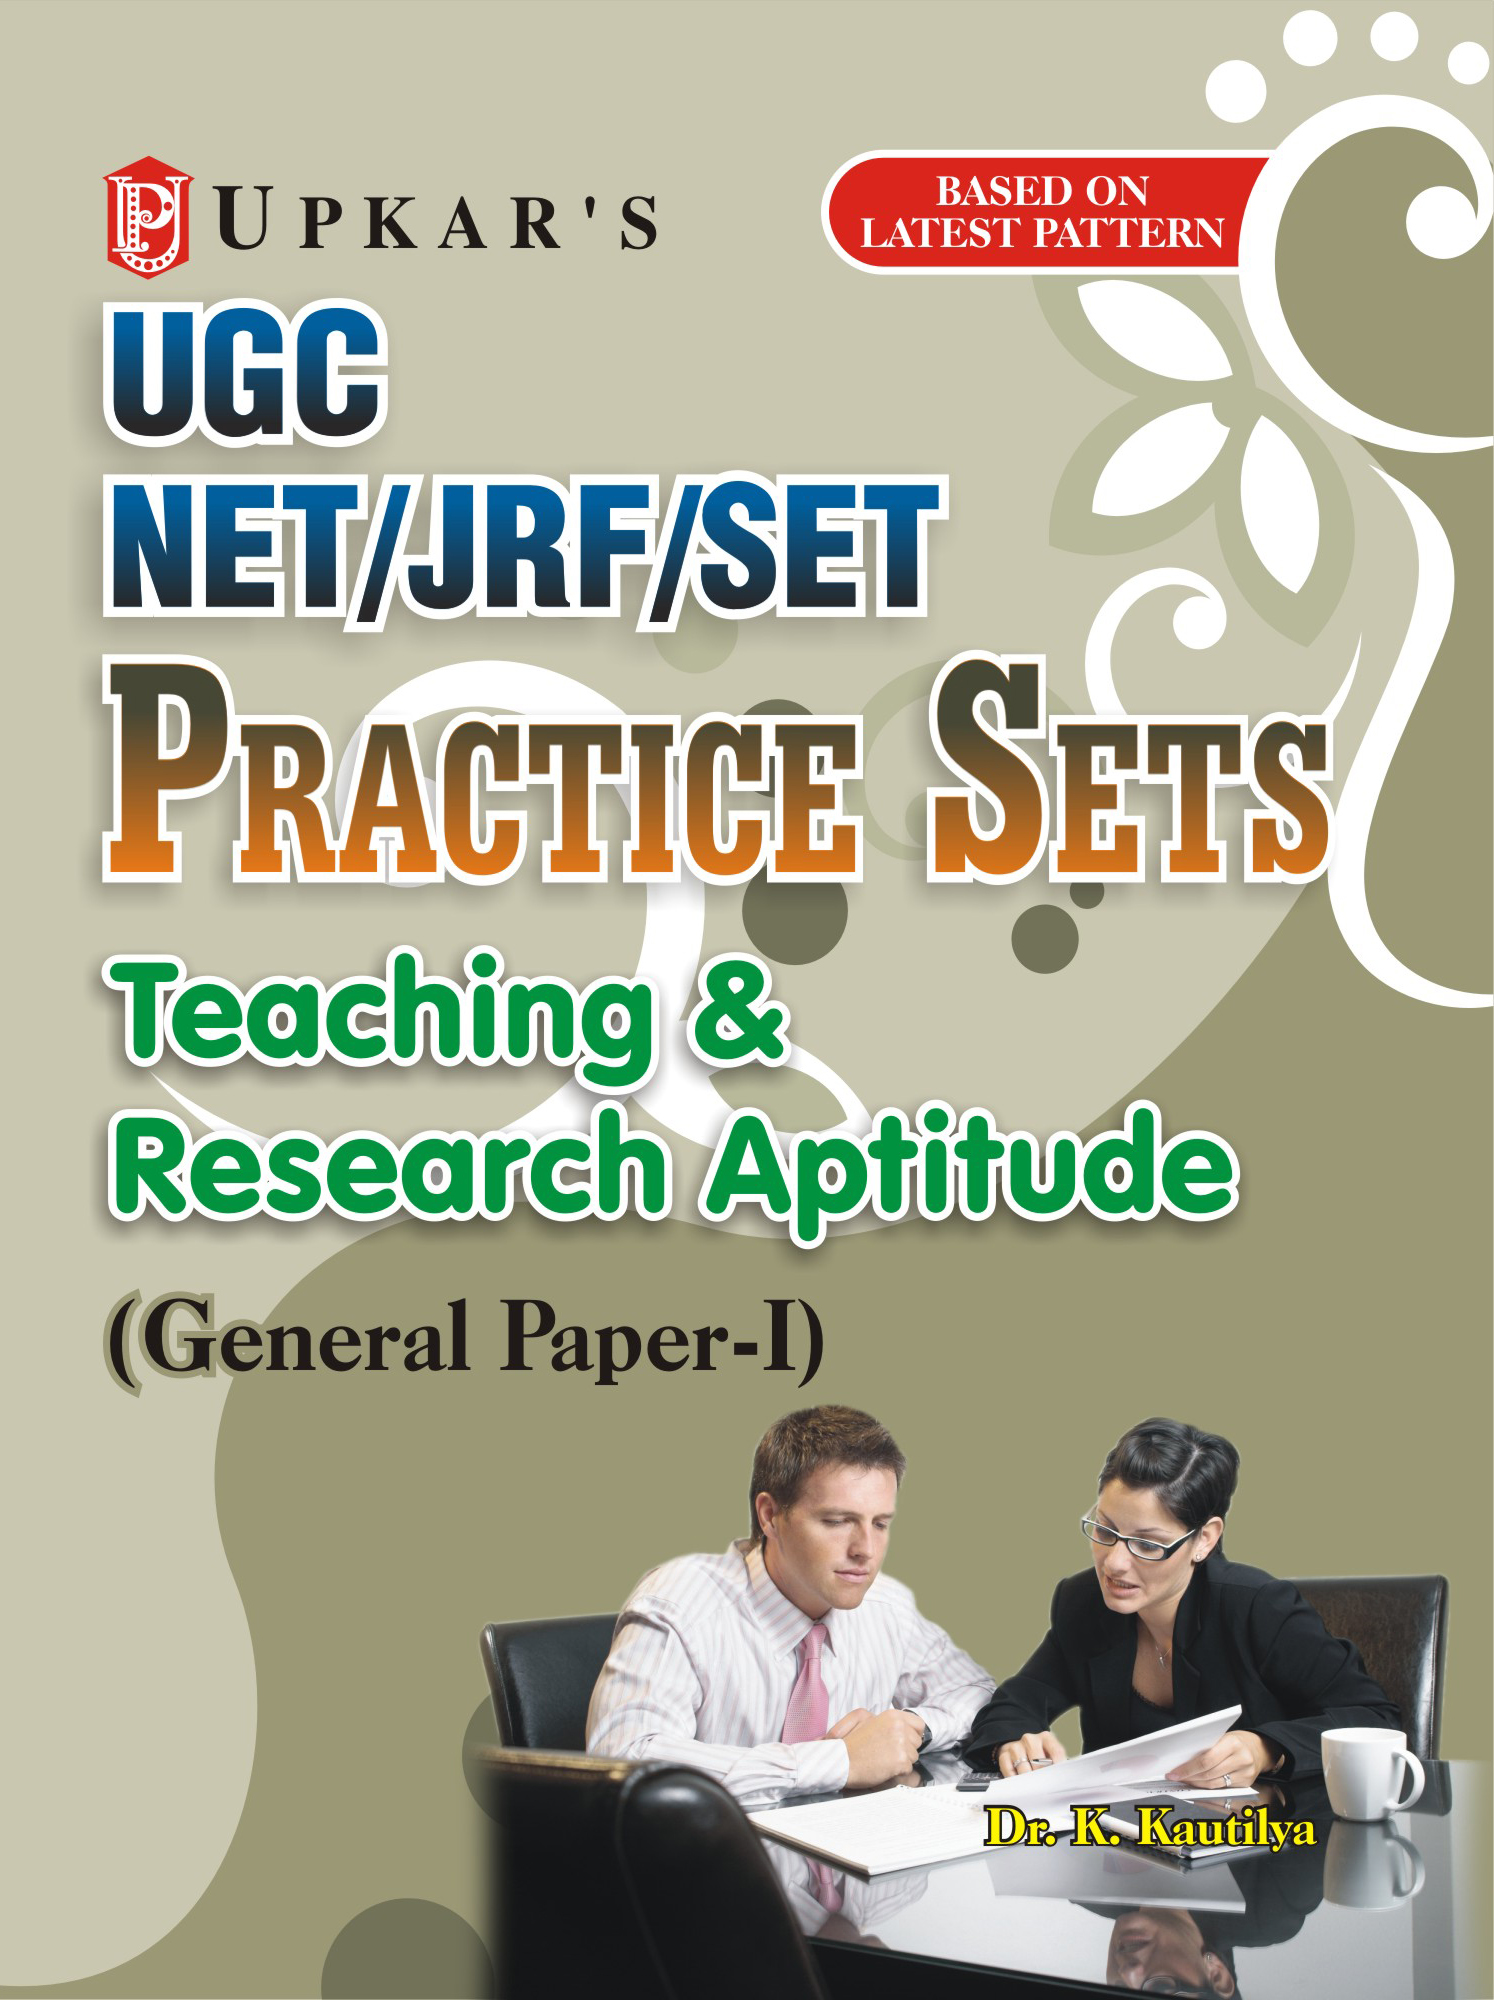 general paper on teaching & research aptitude ebooks Ugc net/jrf/set teaching & research aptitude (general paper-i) by dr k kautilya pdf download | isbn: 9789350134521 from upkar prakashan get free pdf online.